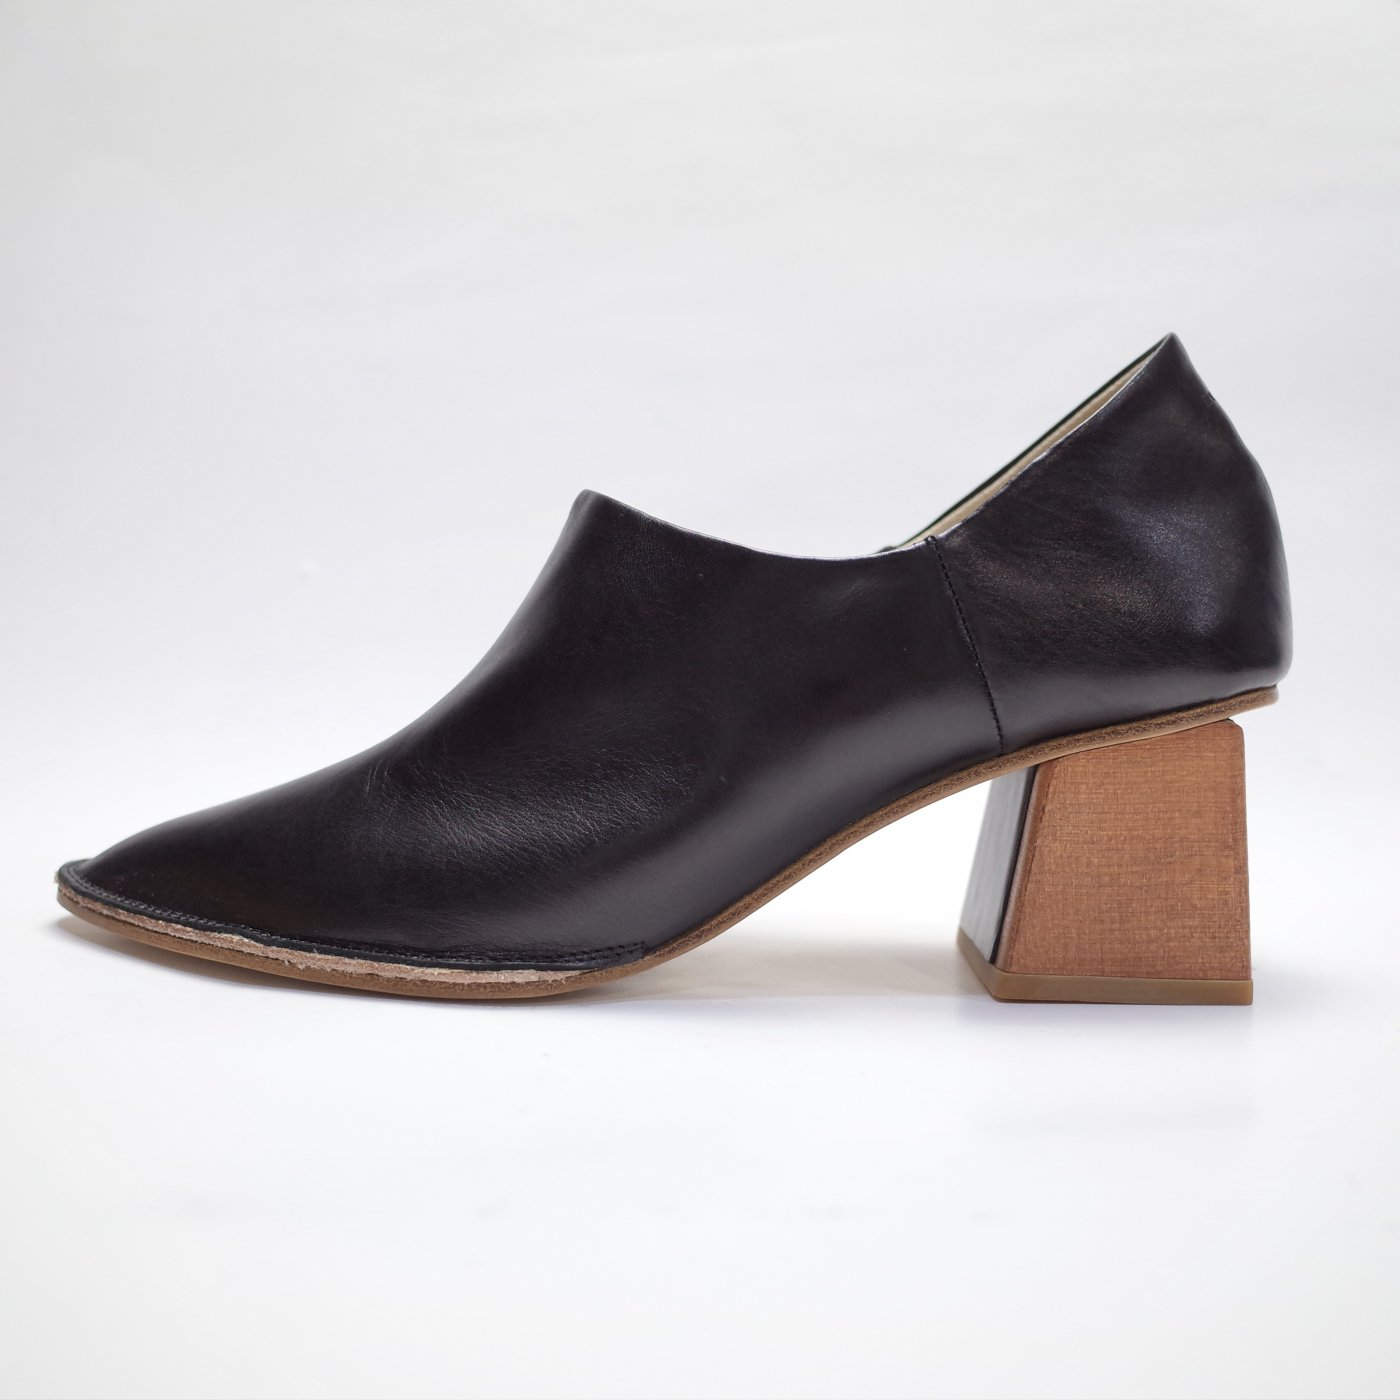 MAISON EUREKA 2018AW-BABOUCHE PUMPS/BLACK-women's